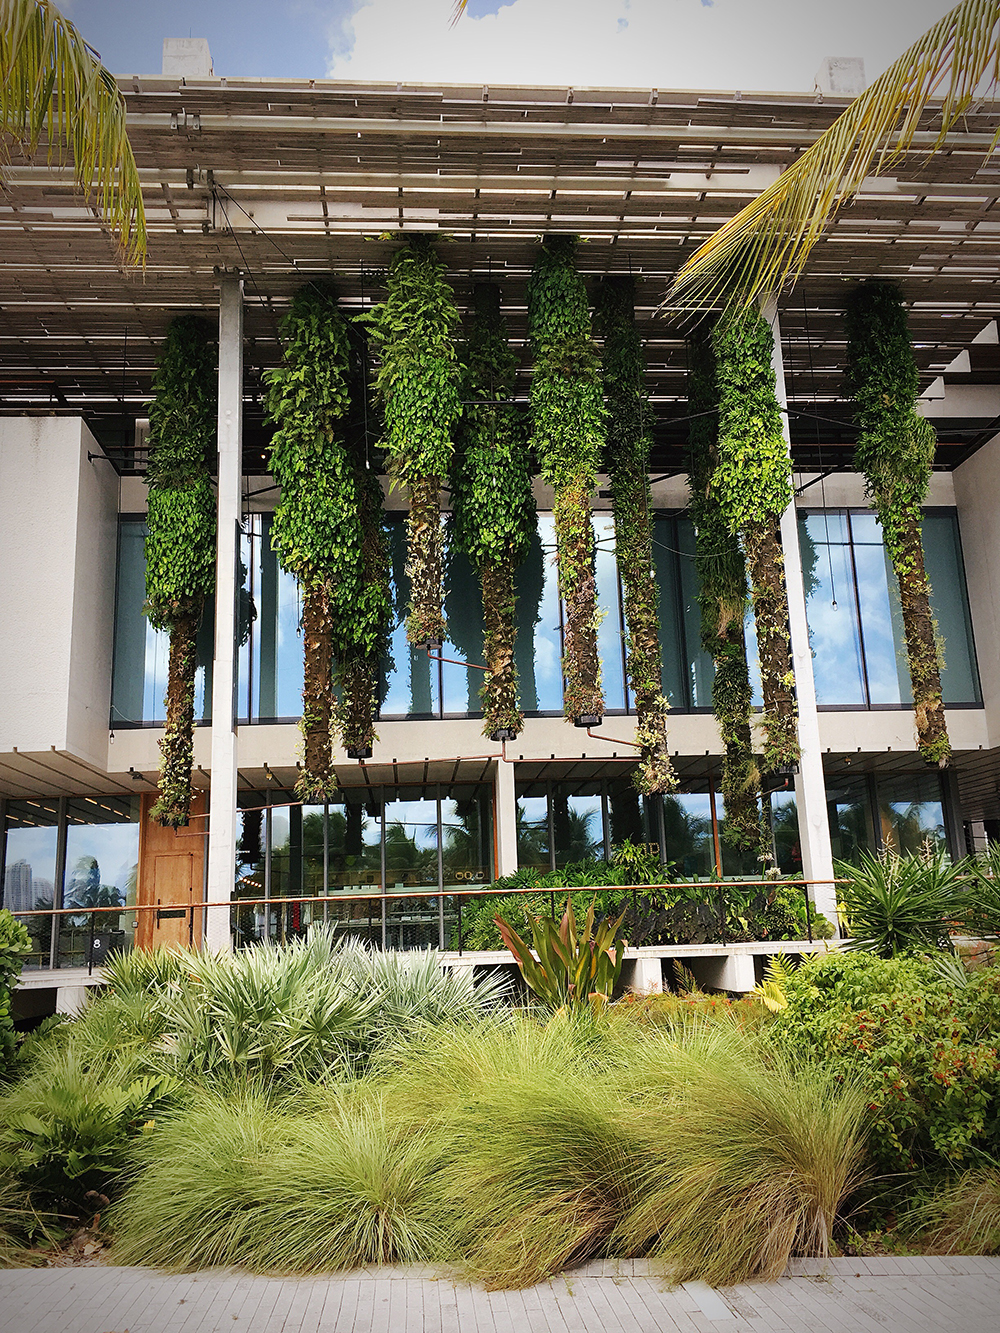 The PAMM from outside with the hanging gardens.